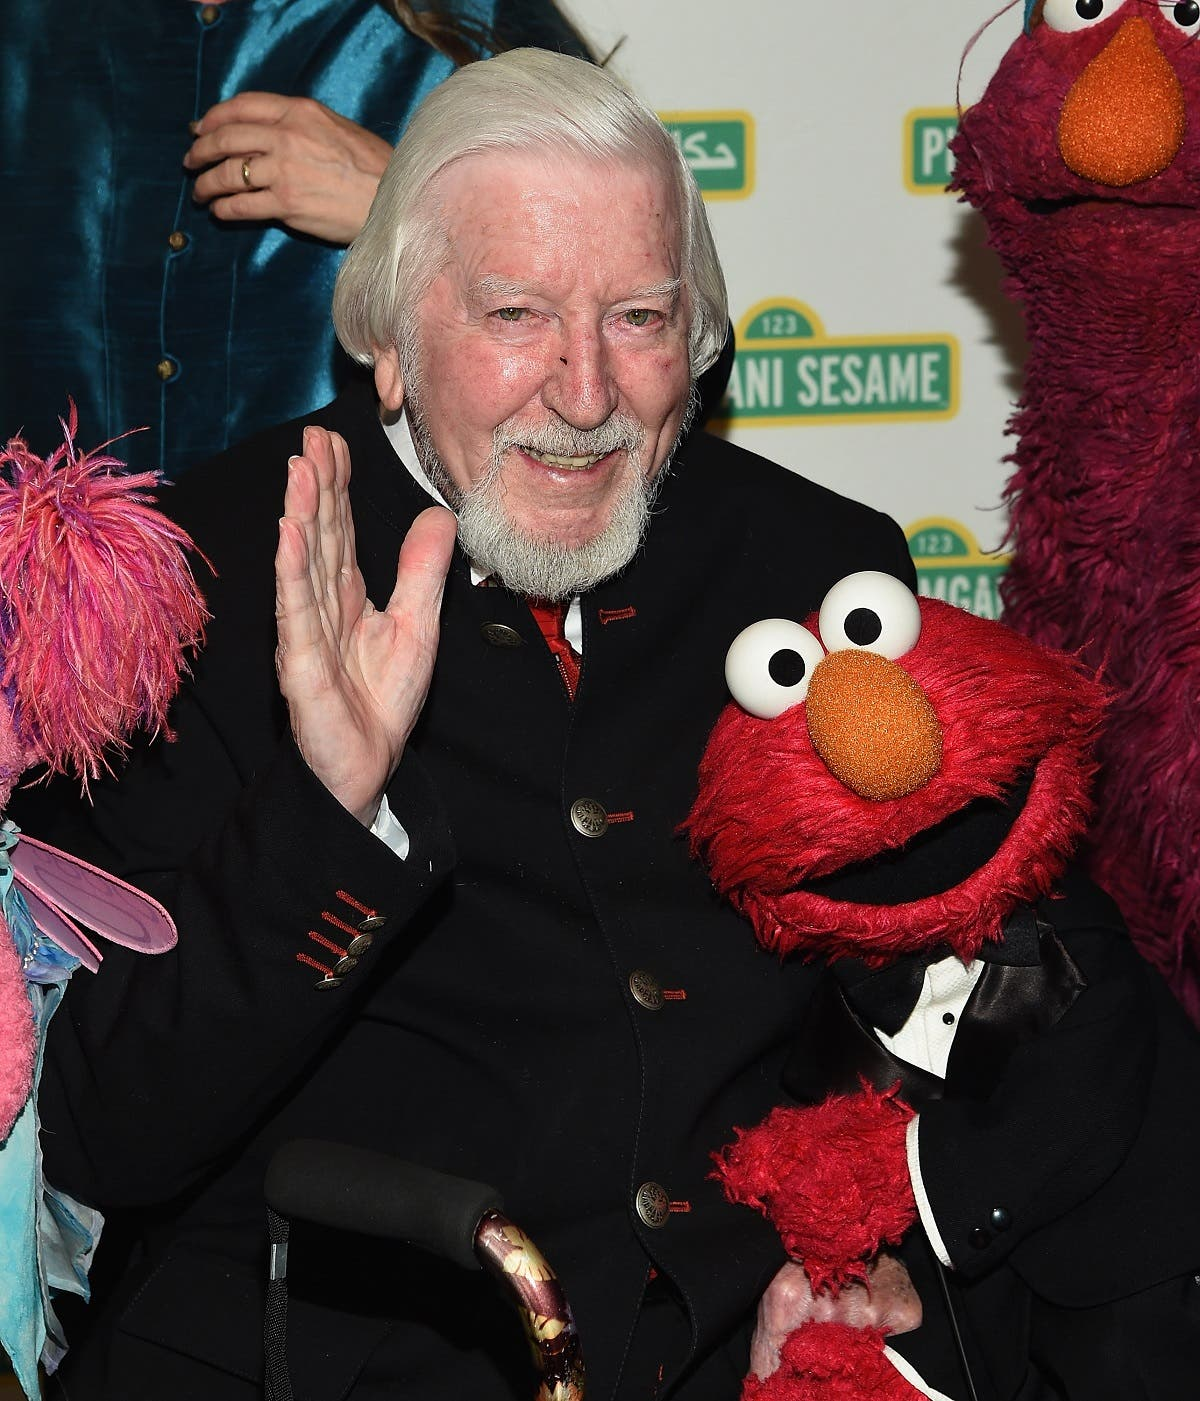 Caroll Spinney and The Muppets attend The 2017 Sesame Workshop Dinner at Cipriani 42nd Street in New York City. (AFP)